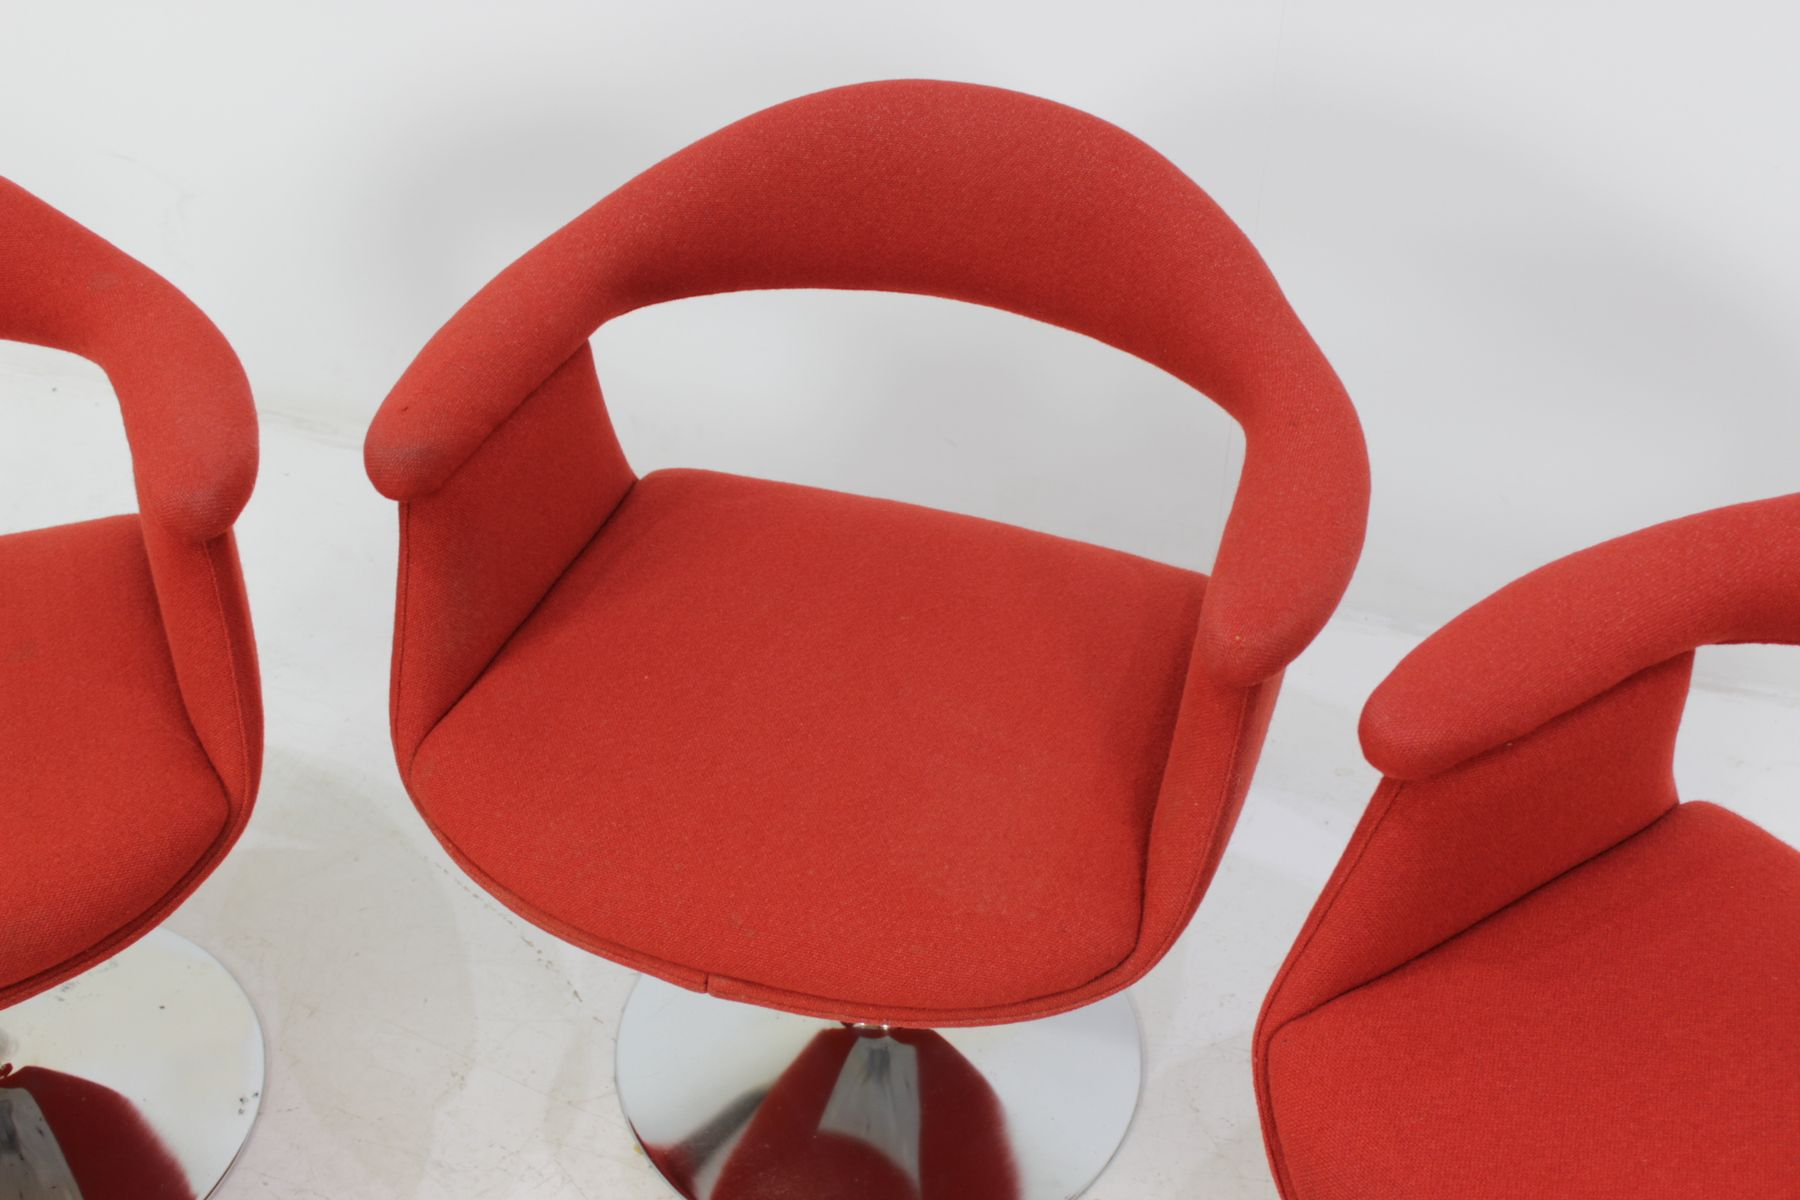 Mid century forelli 8565 chairs by eero aarnio for asko Recliners that look like chairs